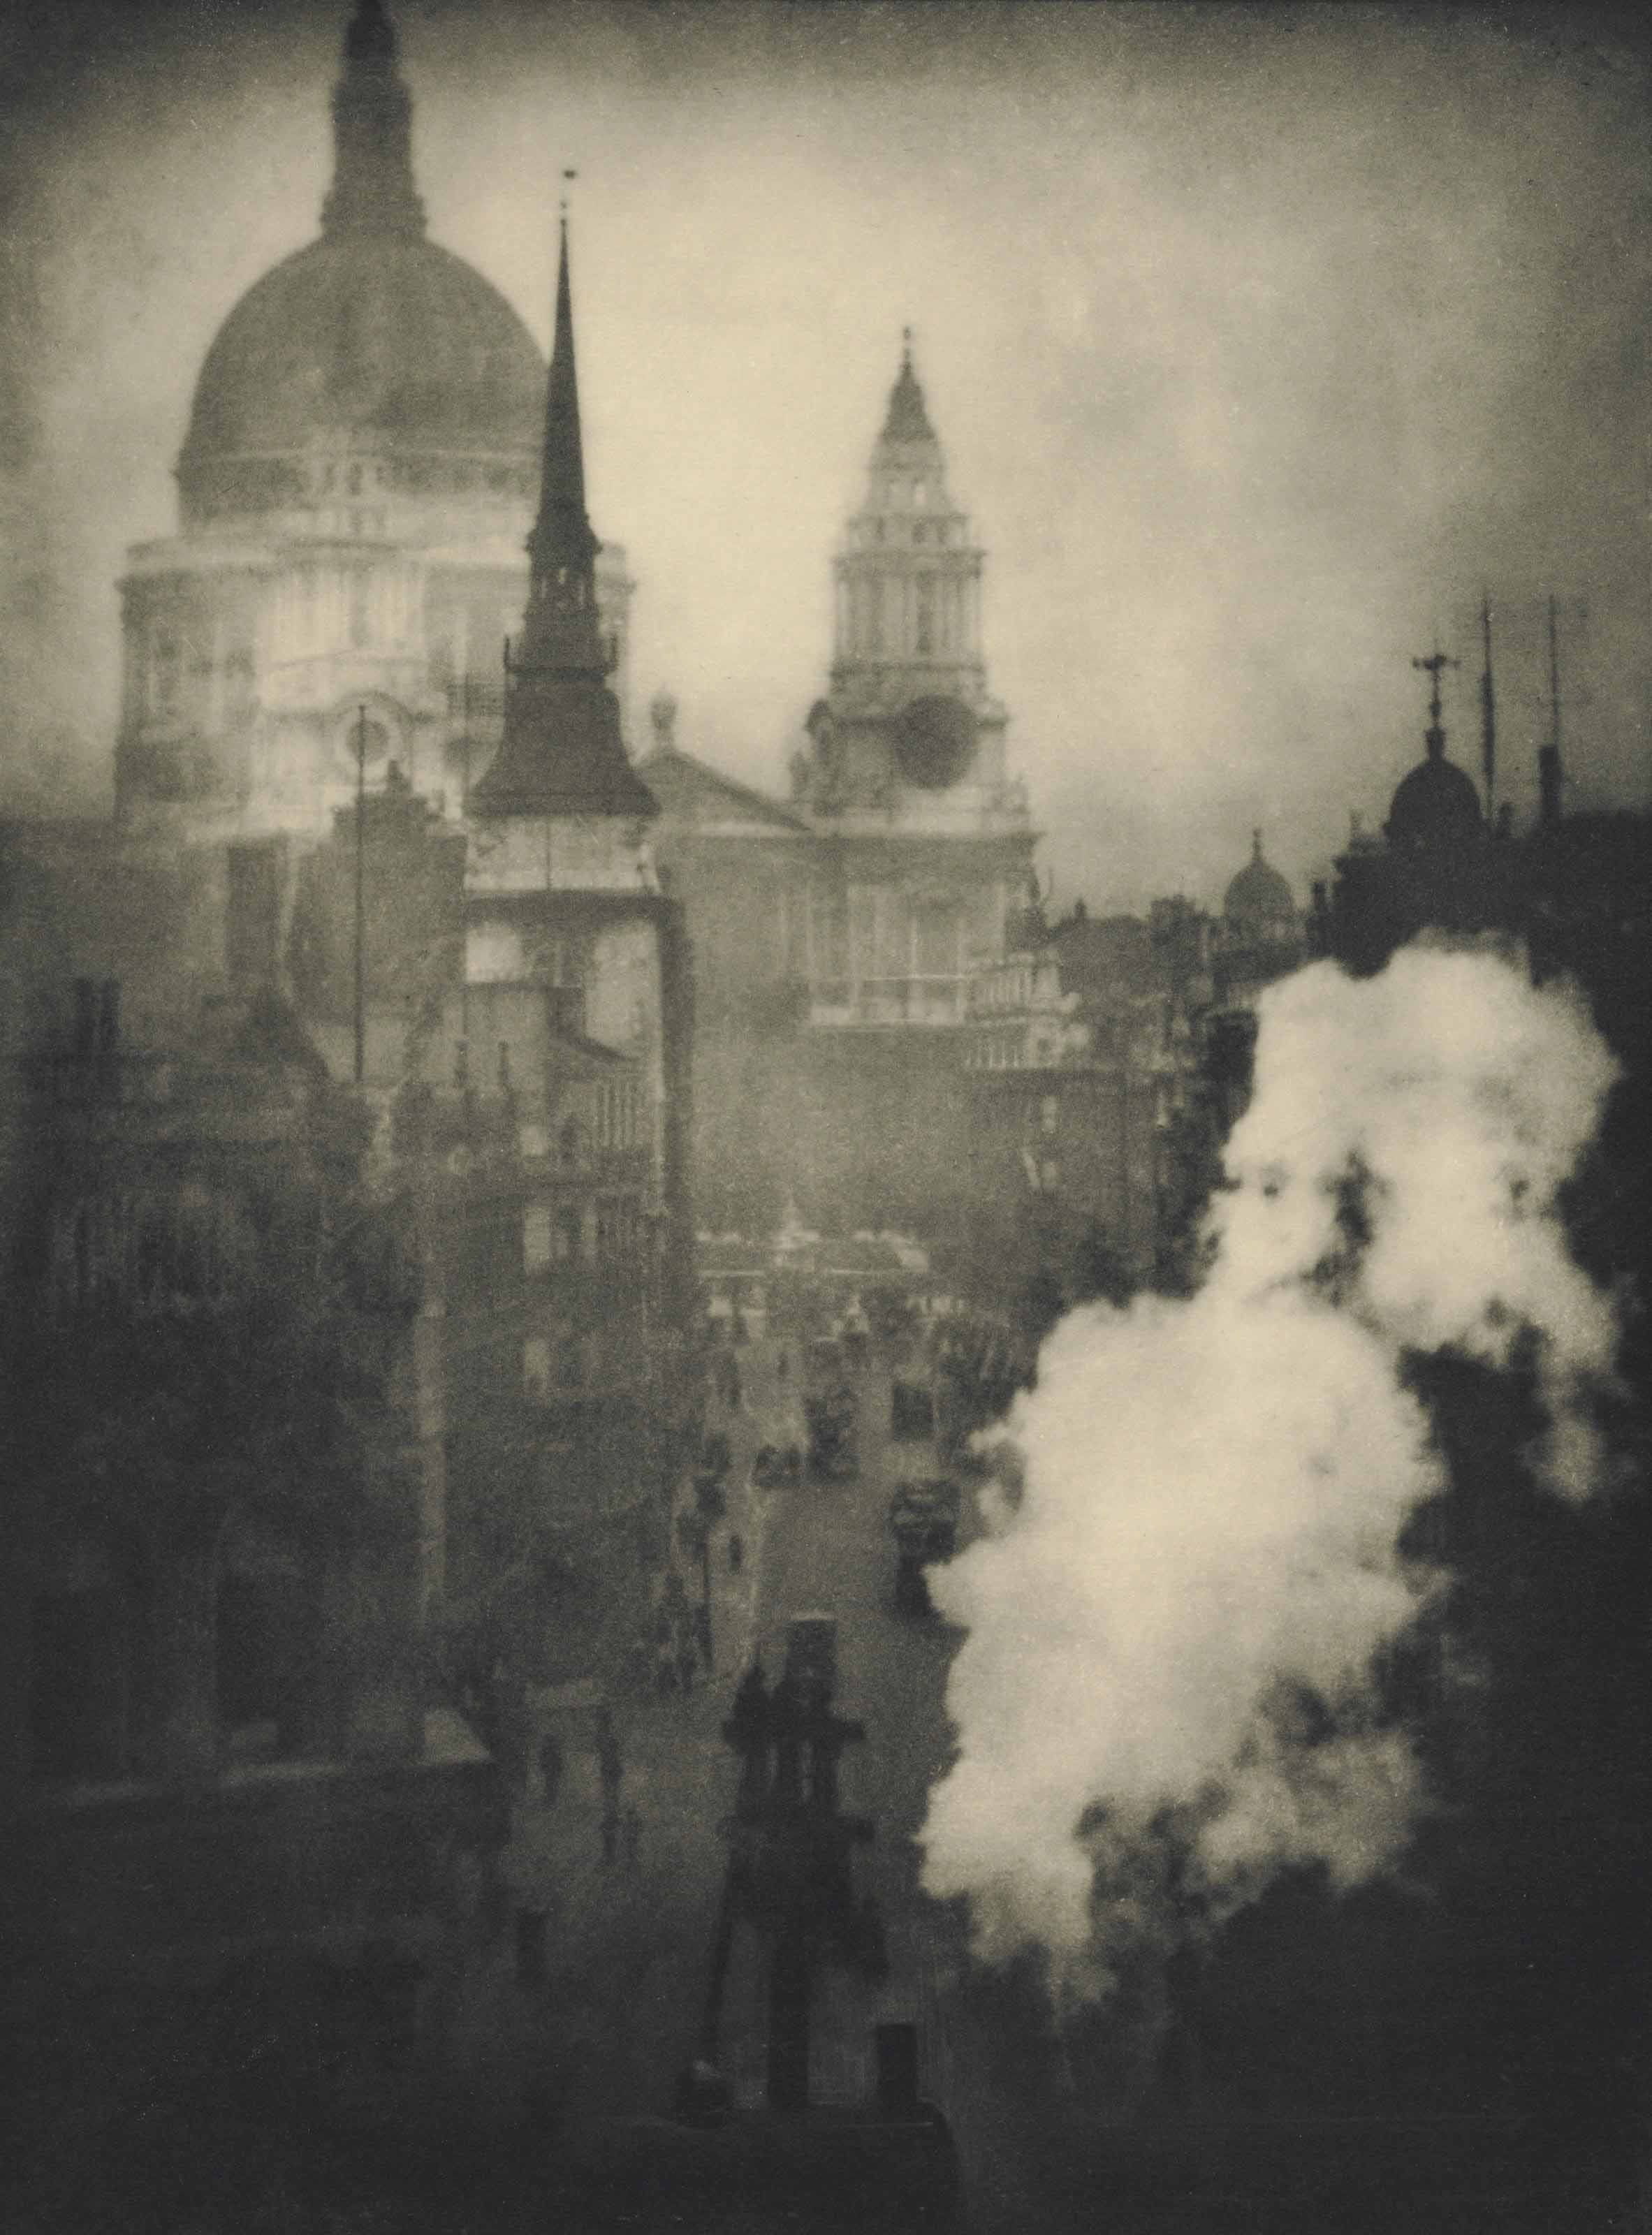 St. Paul's Cathedral from Ludgate Circus, London, 1905